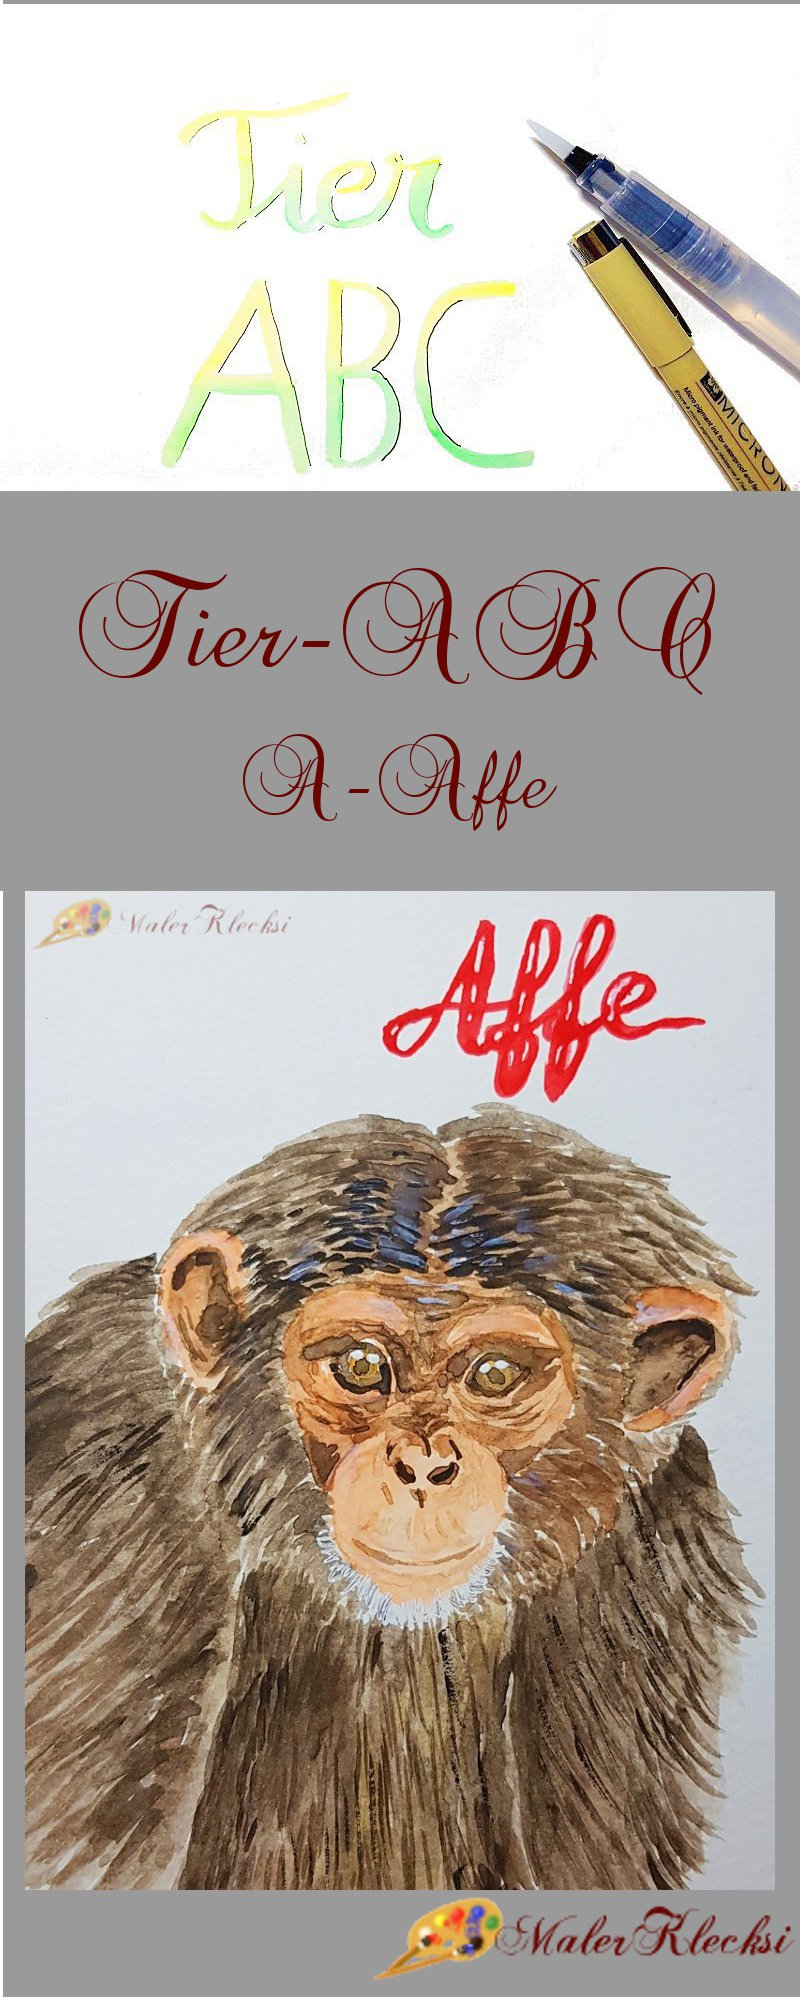 Tier-ABC-A-Affe